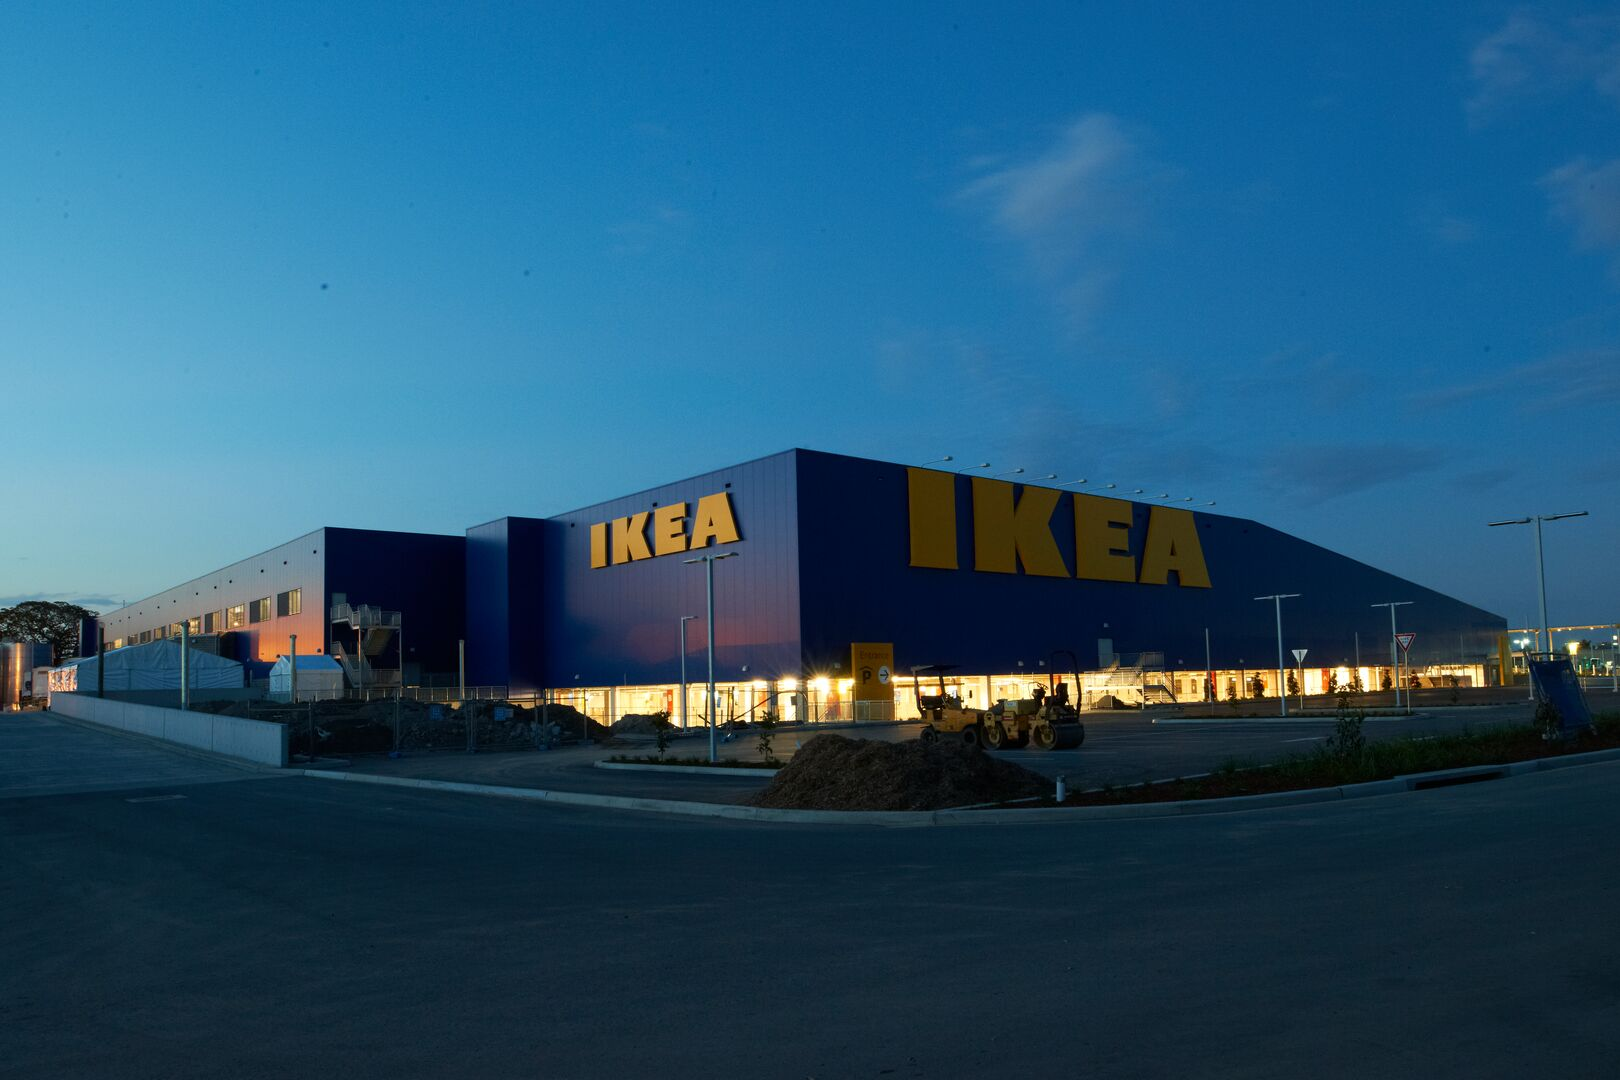 Colorcoat used on IKEA store